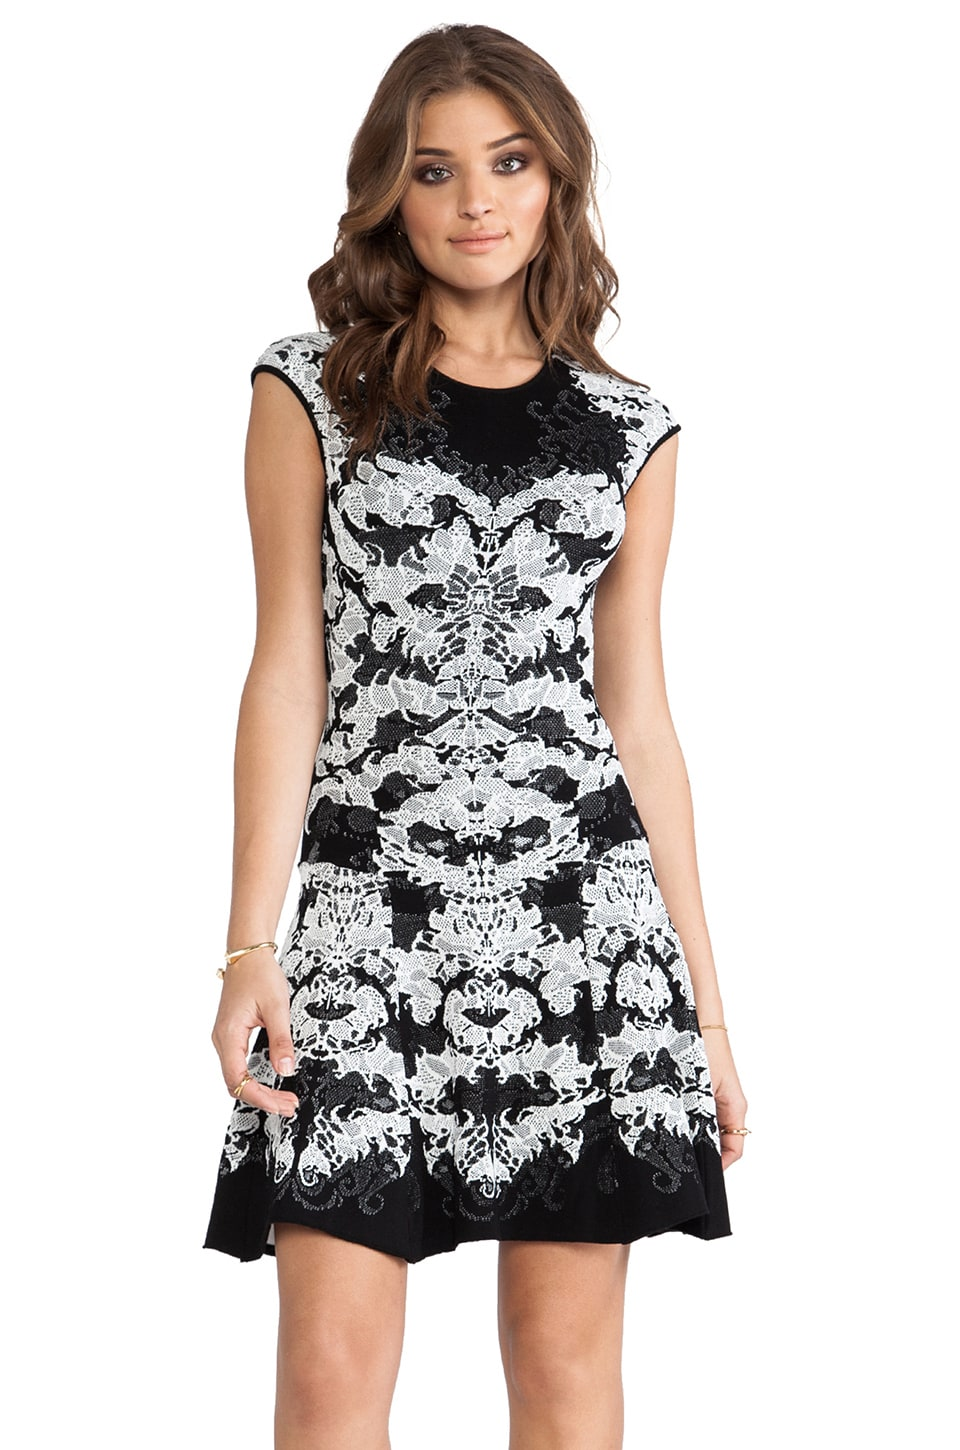 RVN Geo 3D Jacq Dress in Black & White